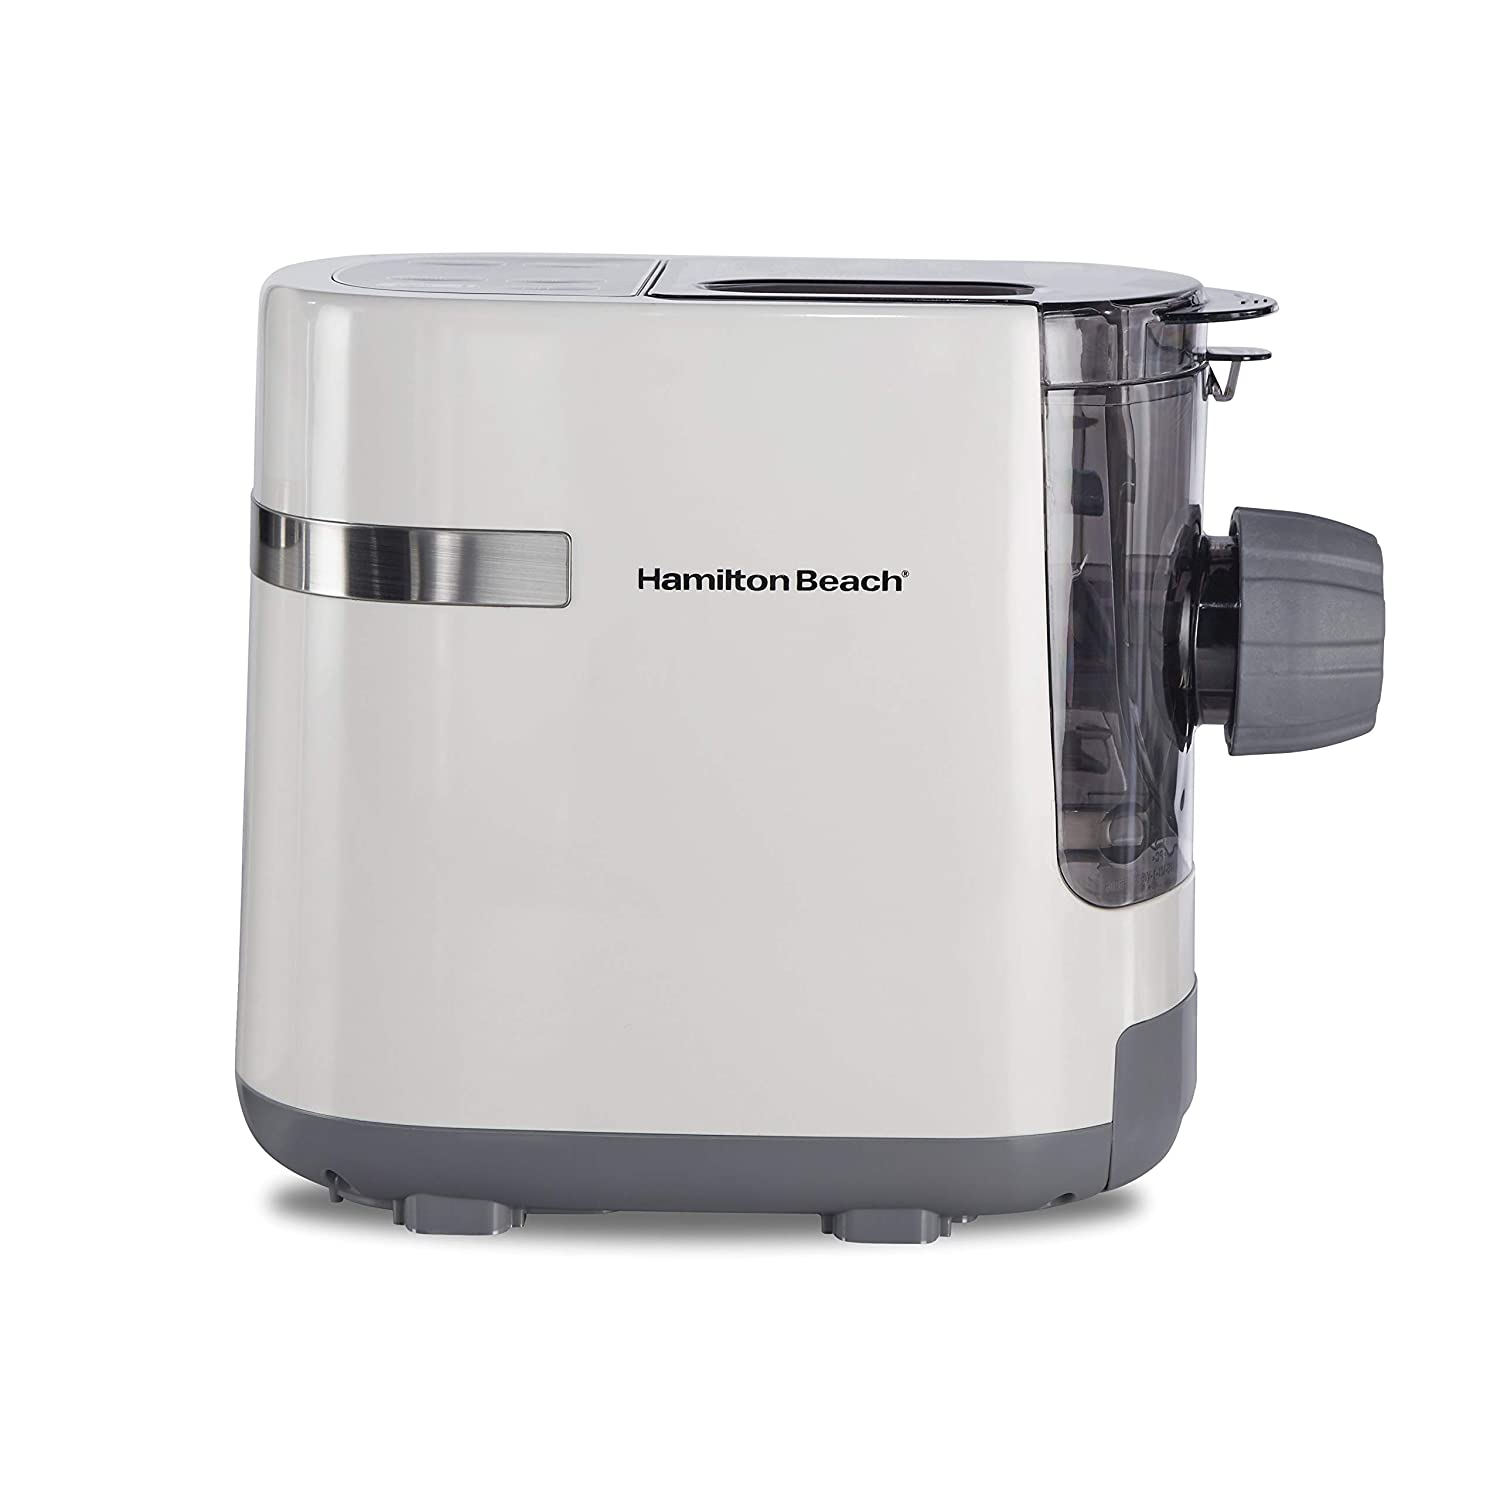 Hamilton Beach 86650 Electric Pasta and Noodle Maker Automatic with 7 Shape Options